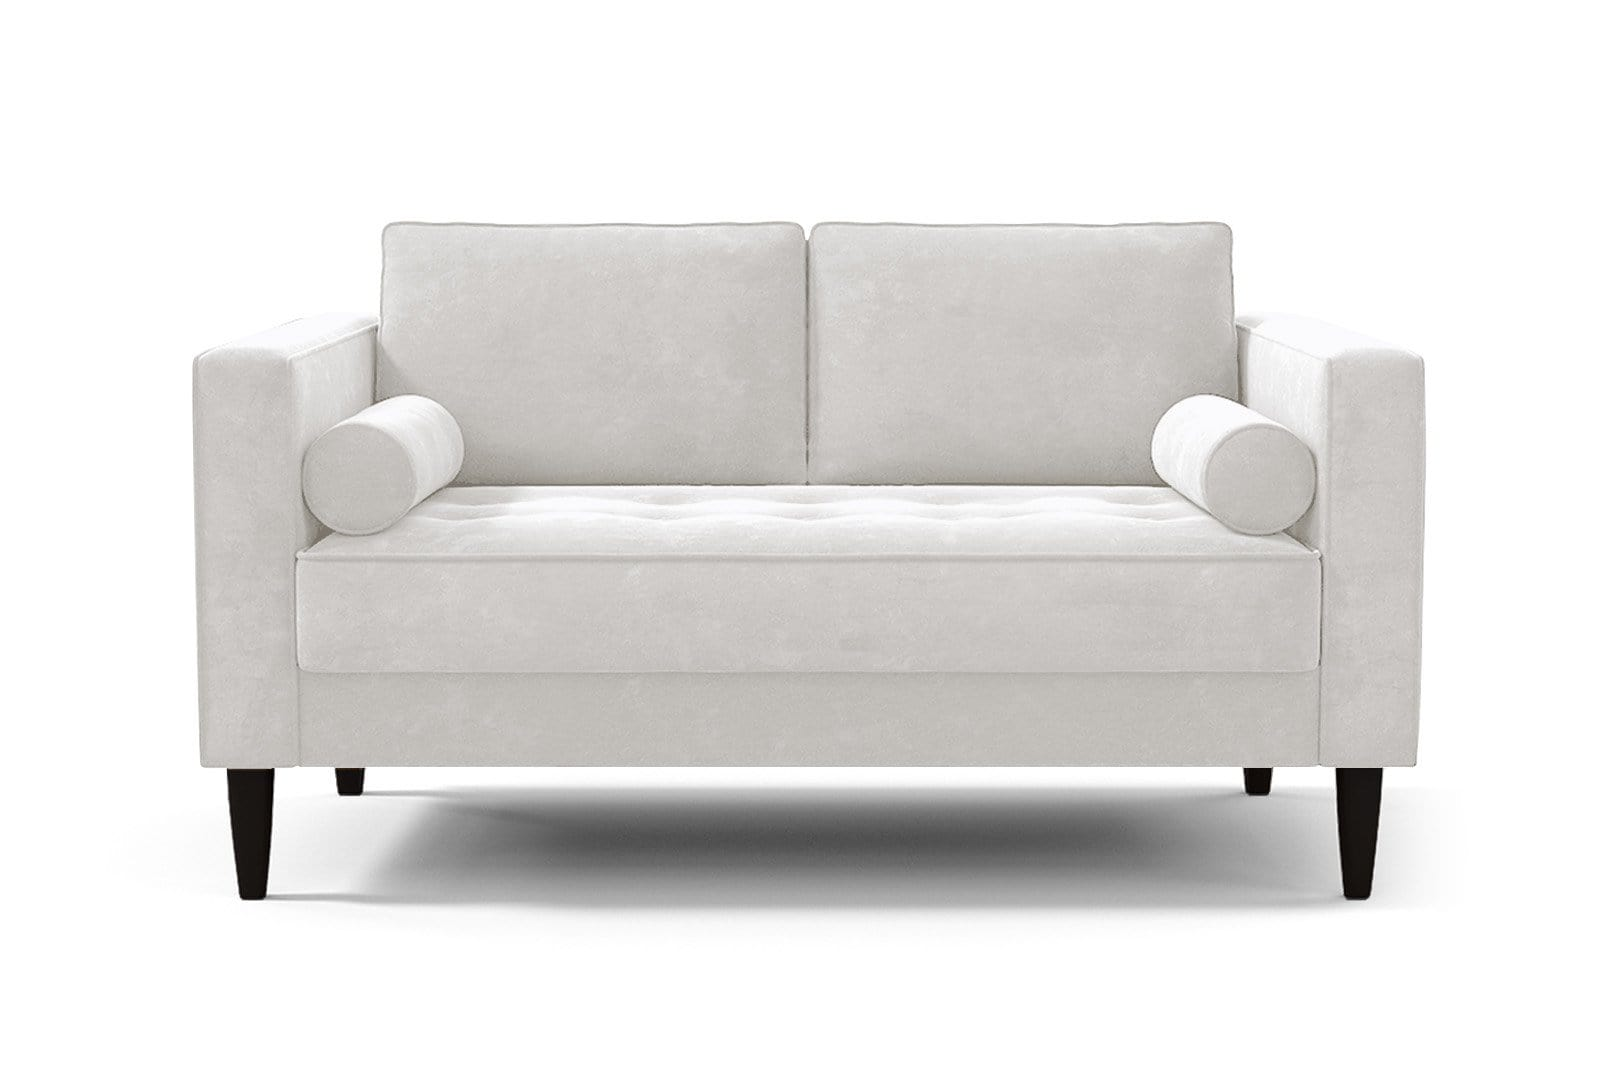 Delilah Loveseat - White Velvet - Small Space Modern Couch Made in the USA - Sold by Apt2B